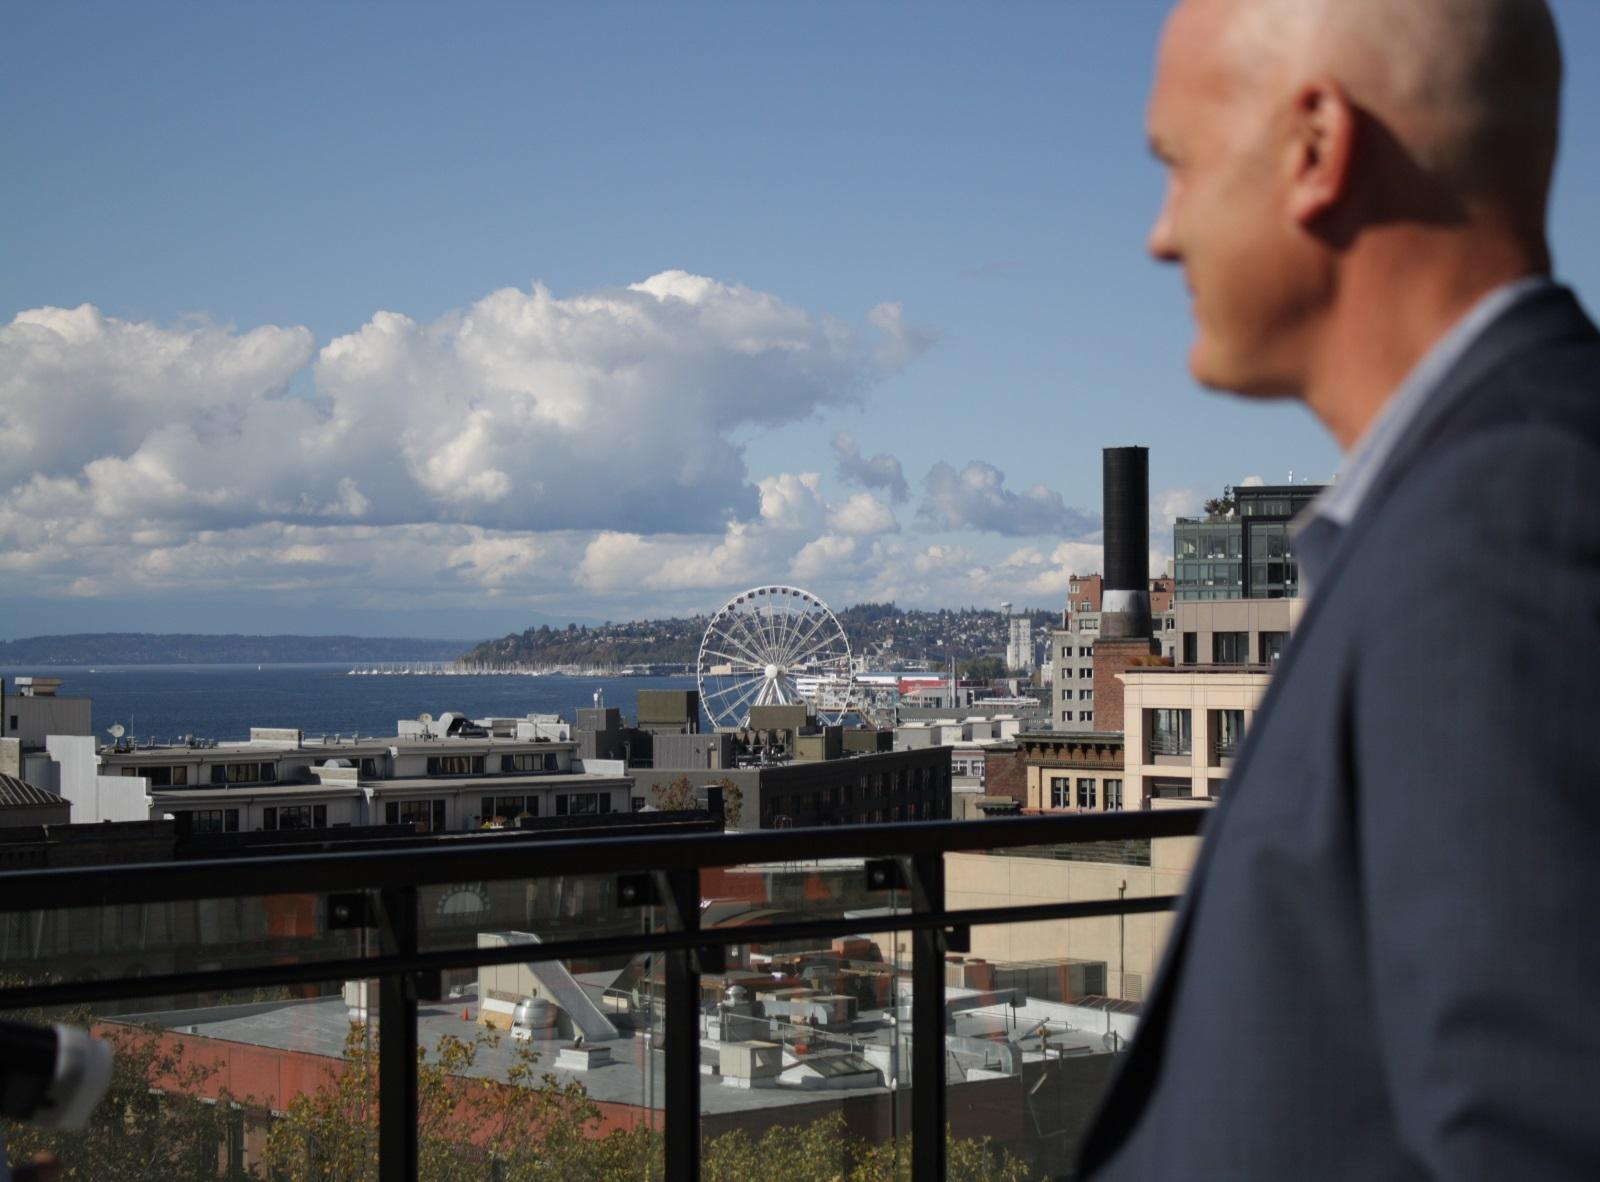 KUOW - Welcome to our funky Seattle neighborhood! Er, we